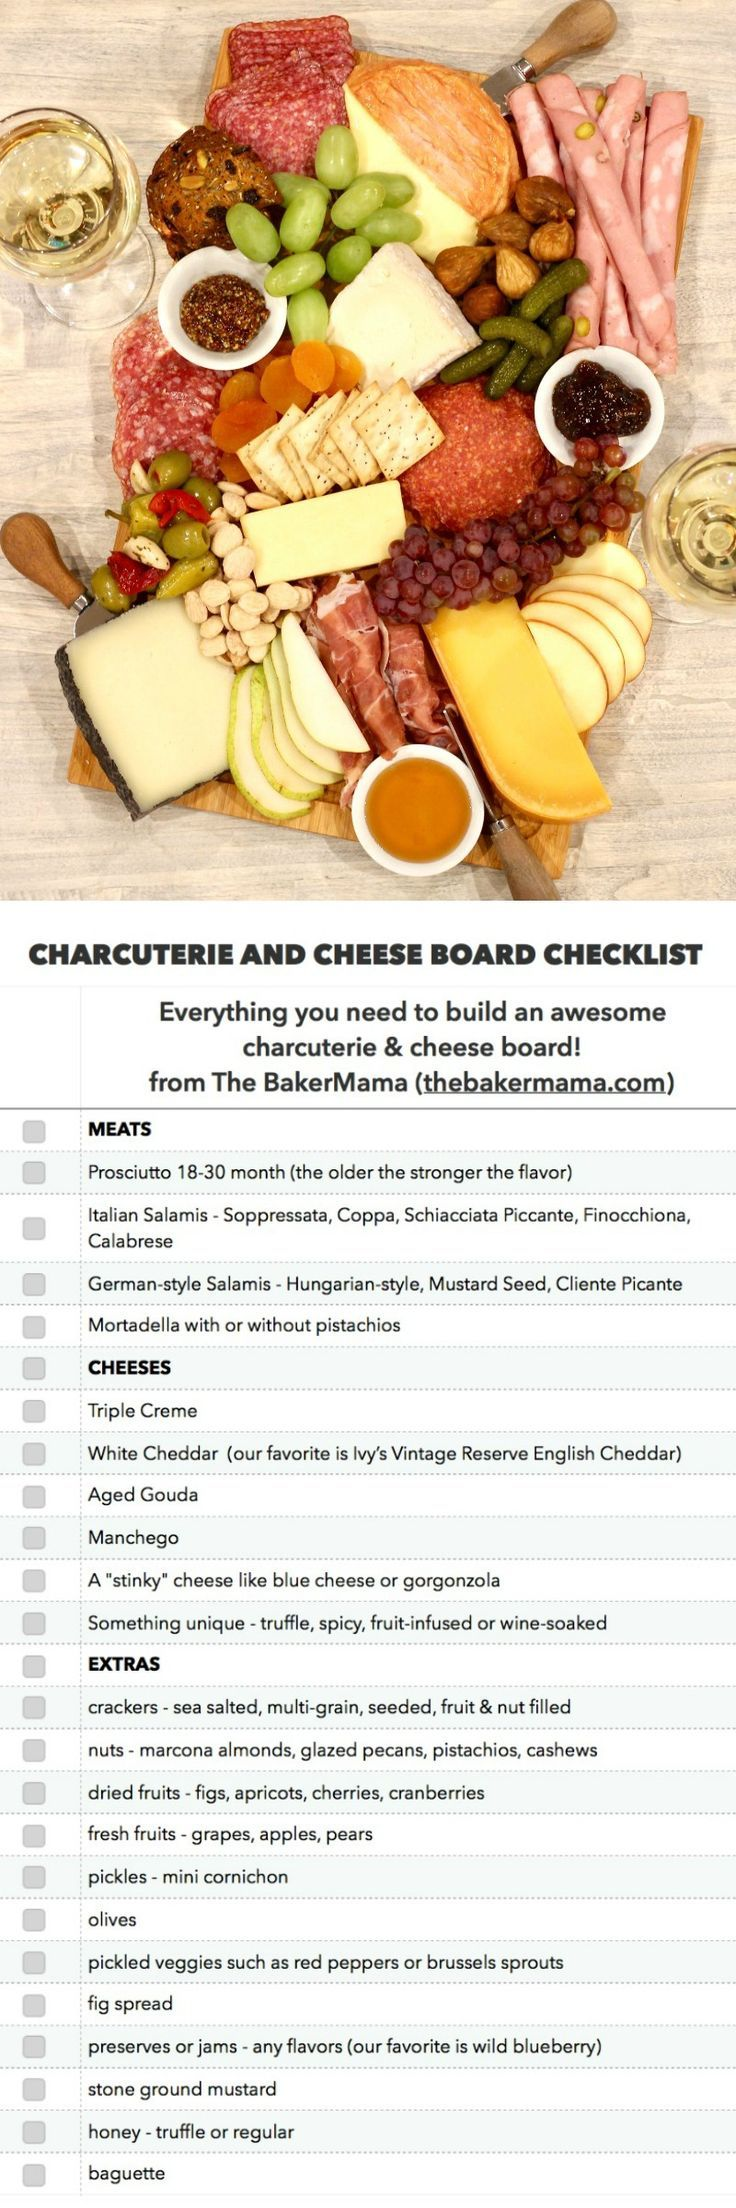 Die BEST Charcuterie and Cheese Board Checkliste Die BEST Charcuterie and Cheese Board Checkliste -